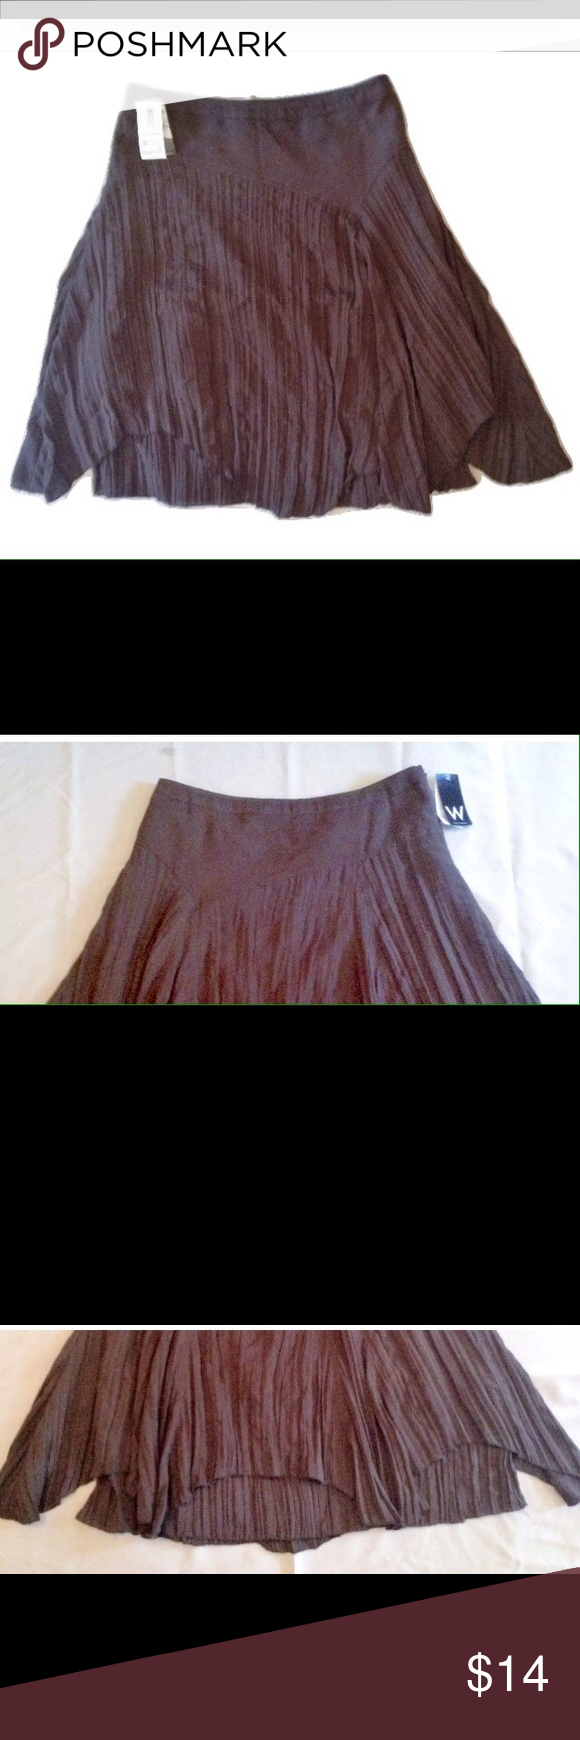 """NEW Work To Weekend Crinkle Skirt JC Penny NEW Work To Weekend Crinkle Skirt JC Penny SIZE 12   •Flare style/crinkle/not crinkle at the tummy area •Front jagged hemline •Side zipper closure •Size: 12 •Wasit: 34 inches around •Length: 22"""" at the shortest point in the front and 26"""" down the back •65% Polyester, 35% Rayon •Lining: 100% Polyester  I try my best to capture the color/shade. The actual shade may very from the photos.  Thank you so much! Work ro Weekend JC Penny…"""